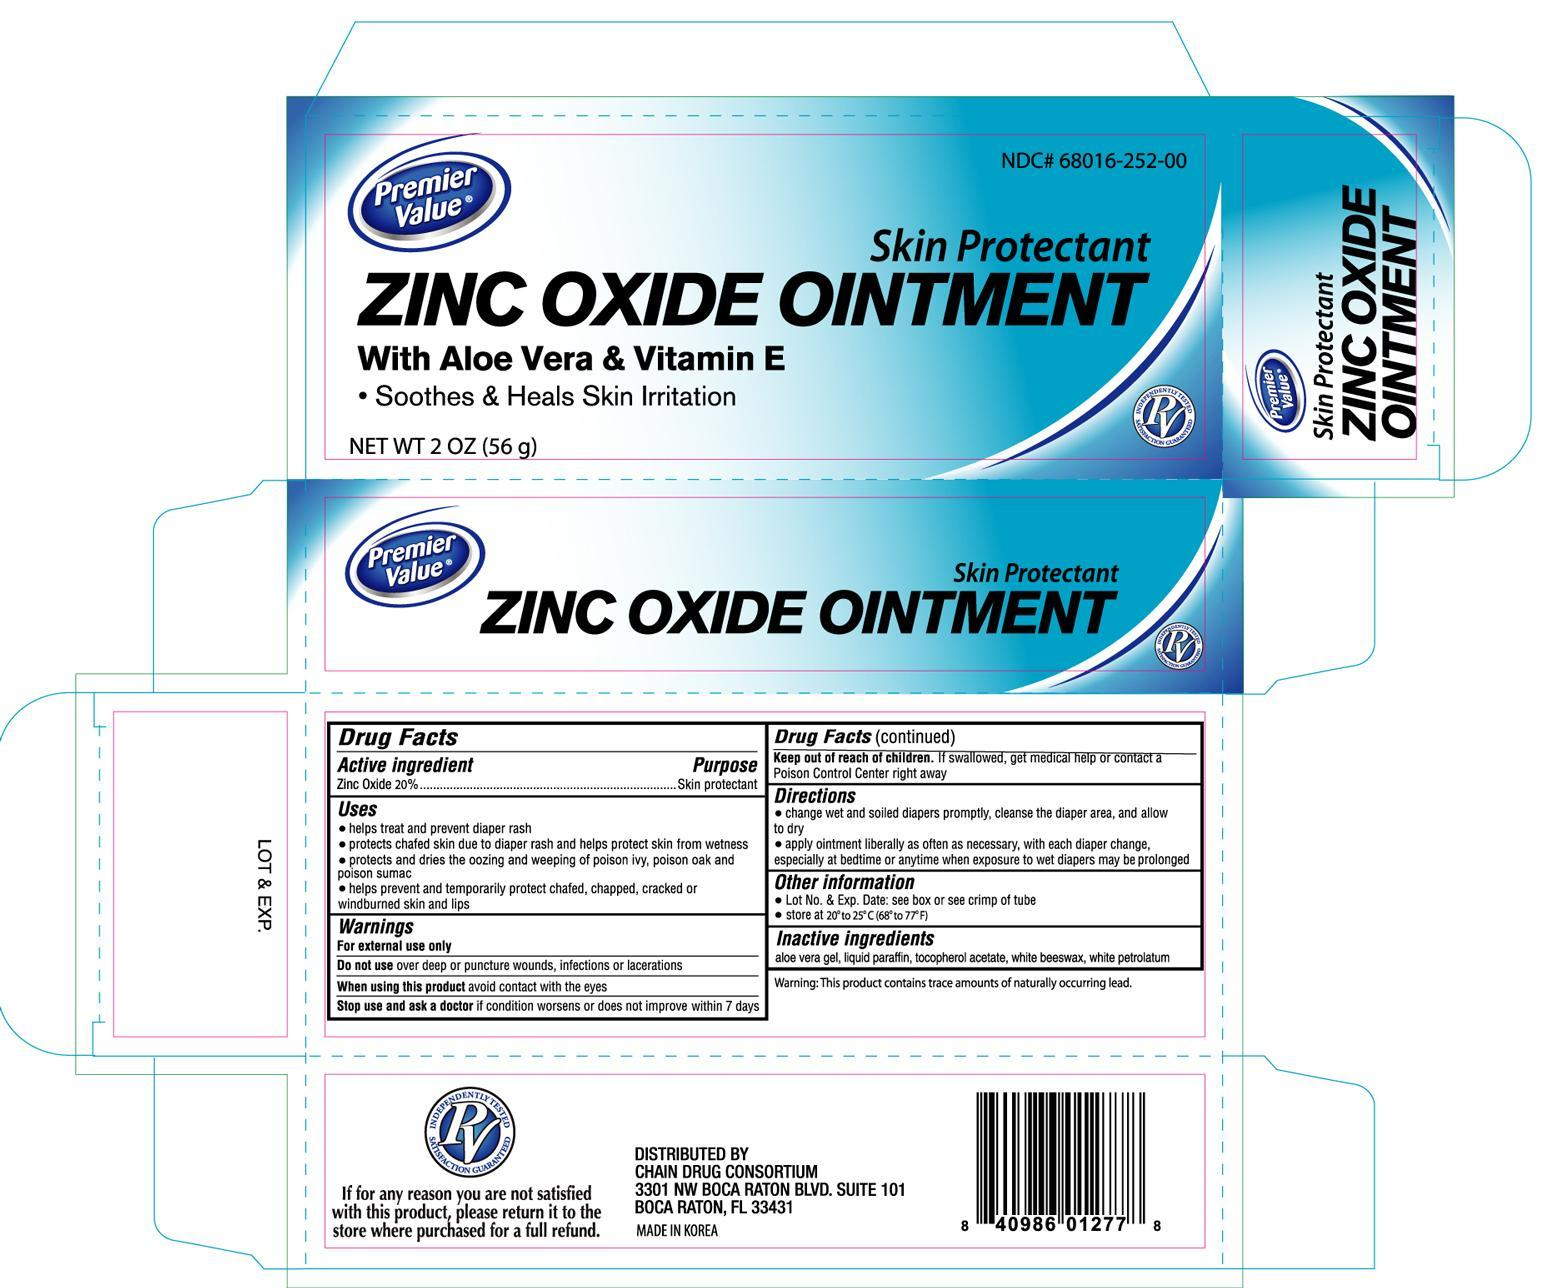 Premier Value Zinc Oxide (Zinc Oxide) Cream [Chain Drug Consortium, Llc]